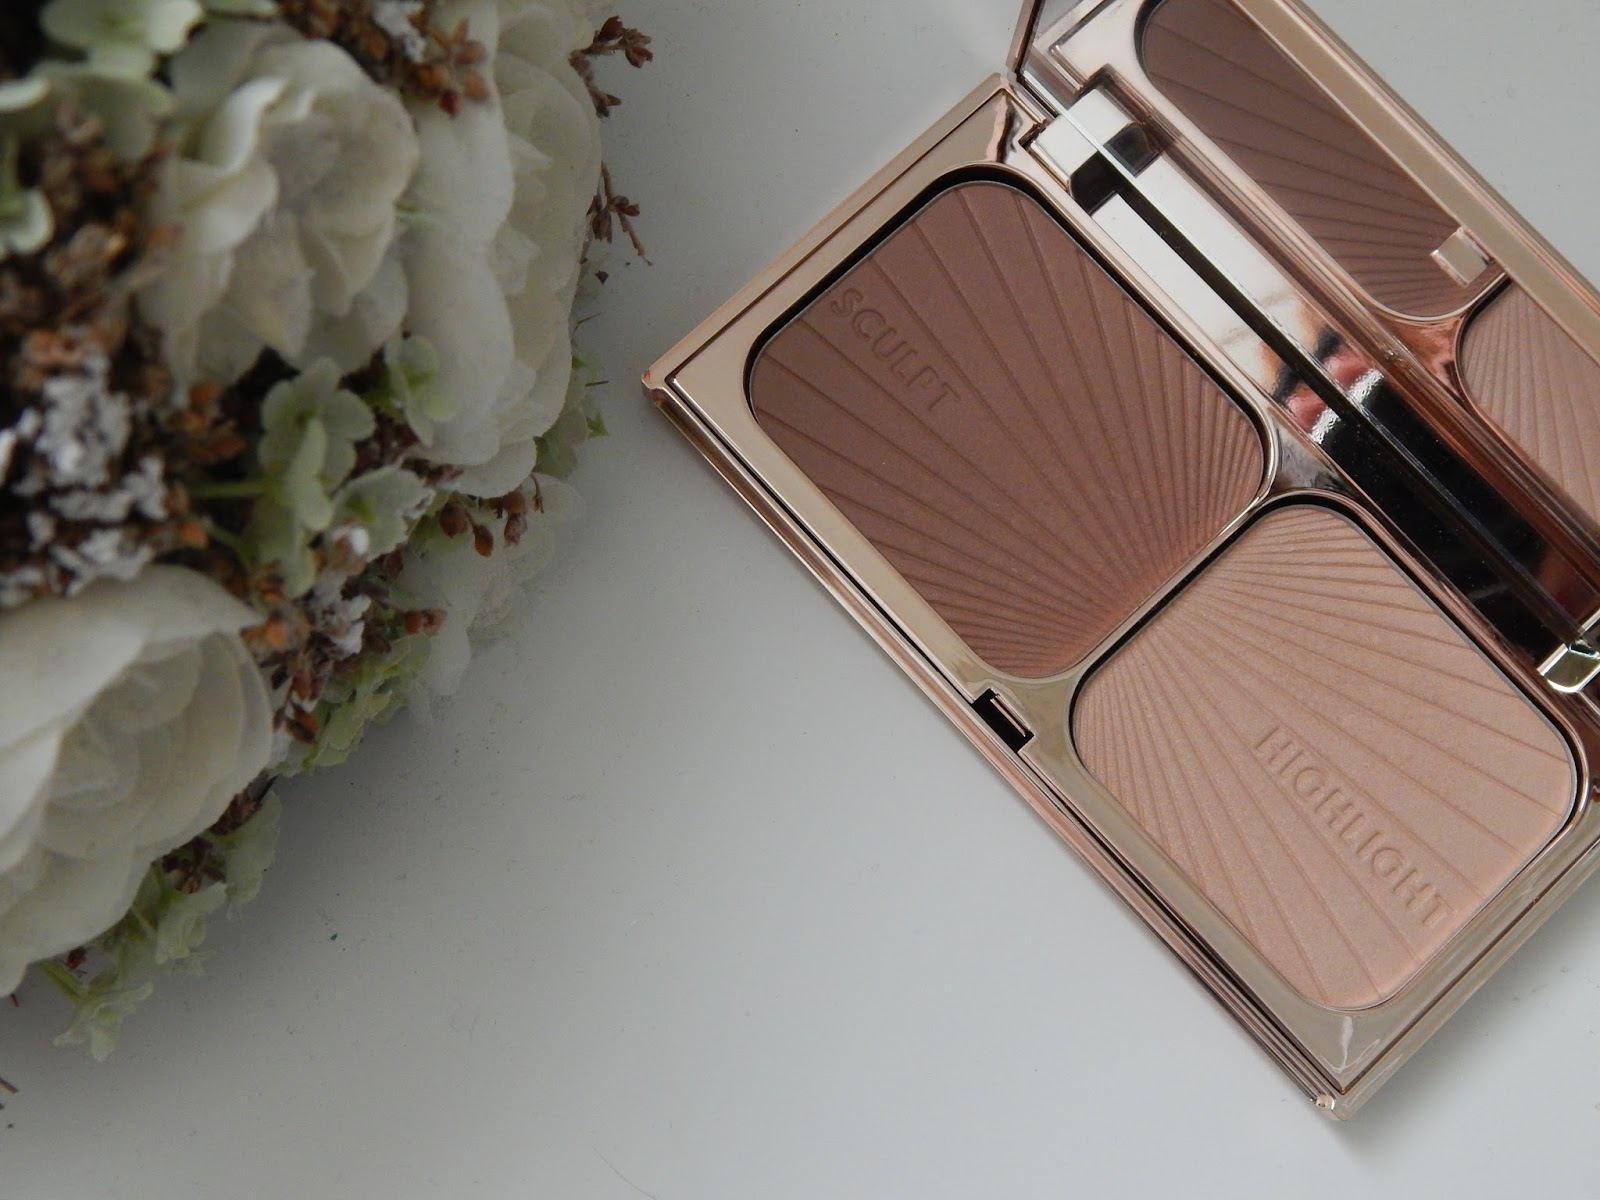 Charlotte Tilbury Bronze and Glow Palette